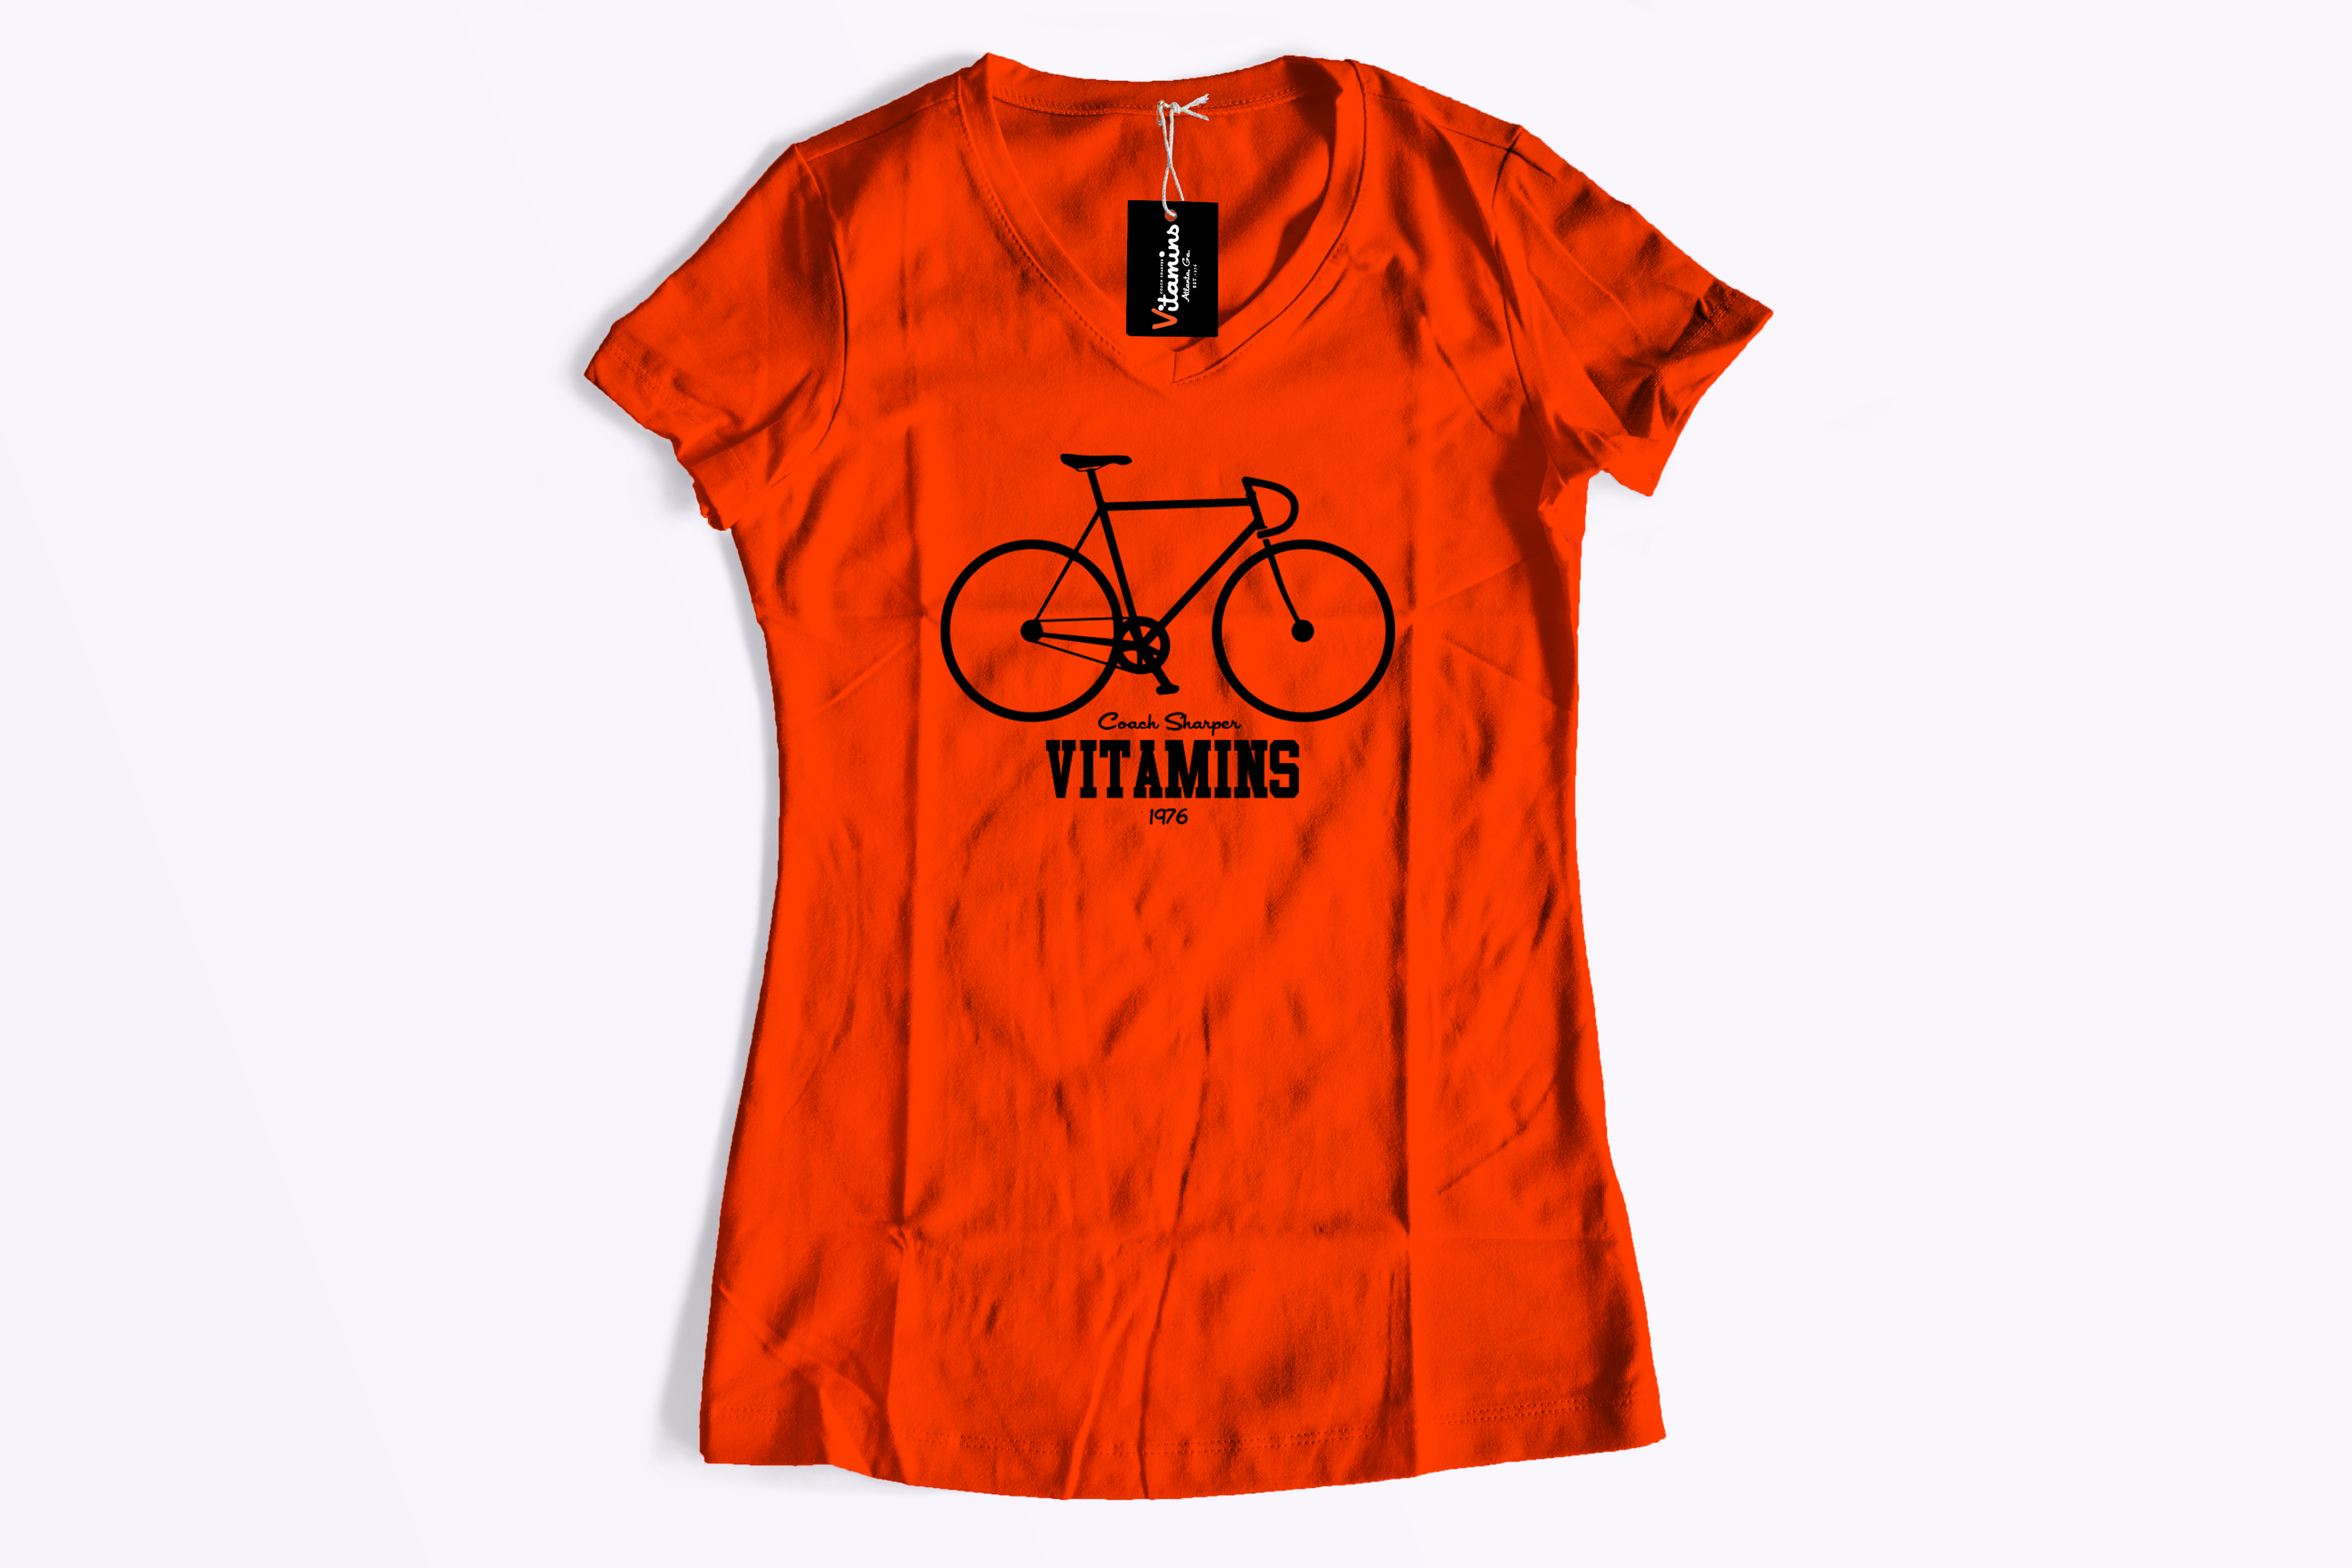 c1735f9700ef Women's Bike T-Shirt. You Are Here: Home → Women → Tees → Women's Bike T- Shirt